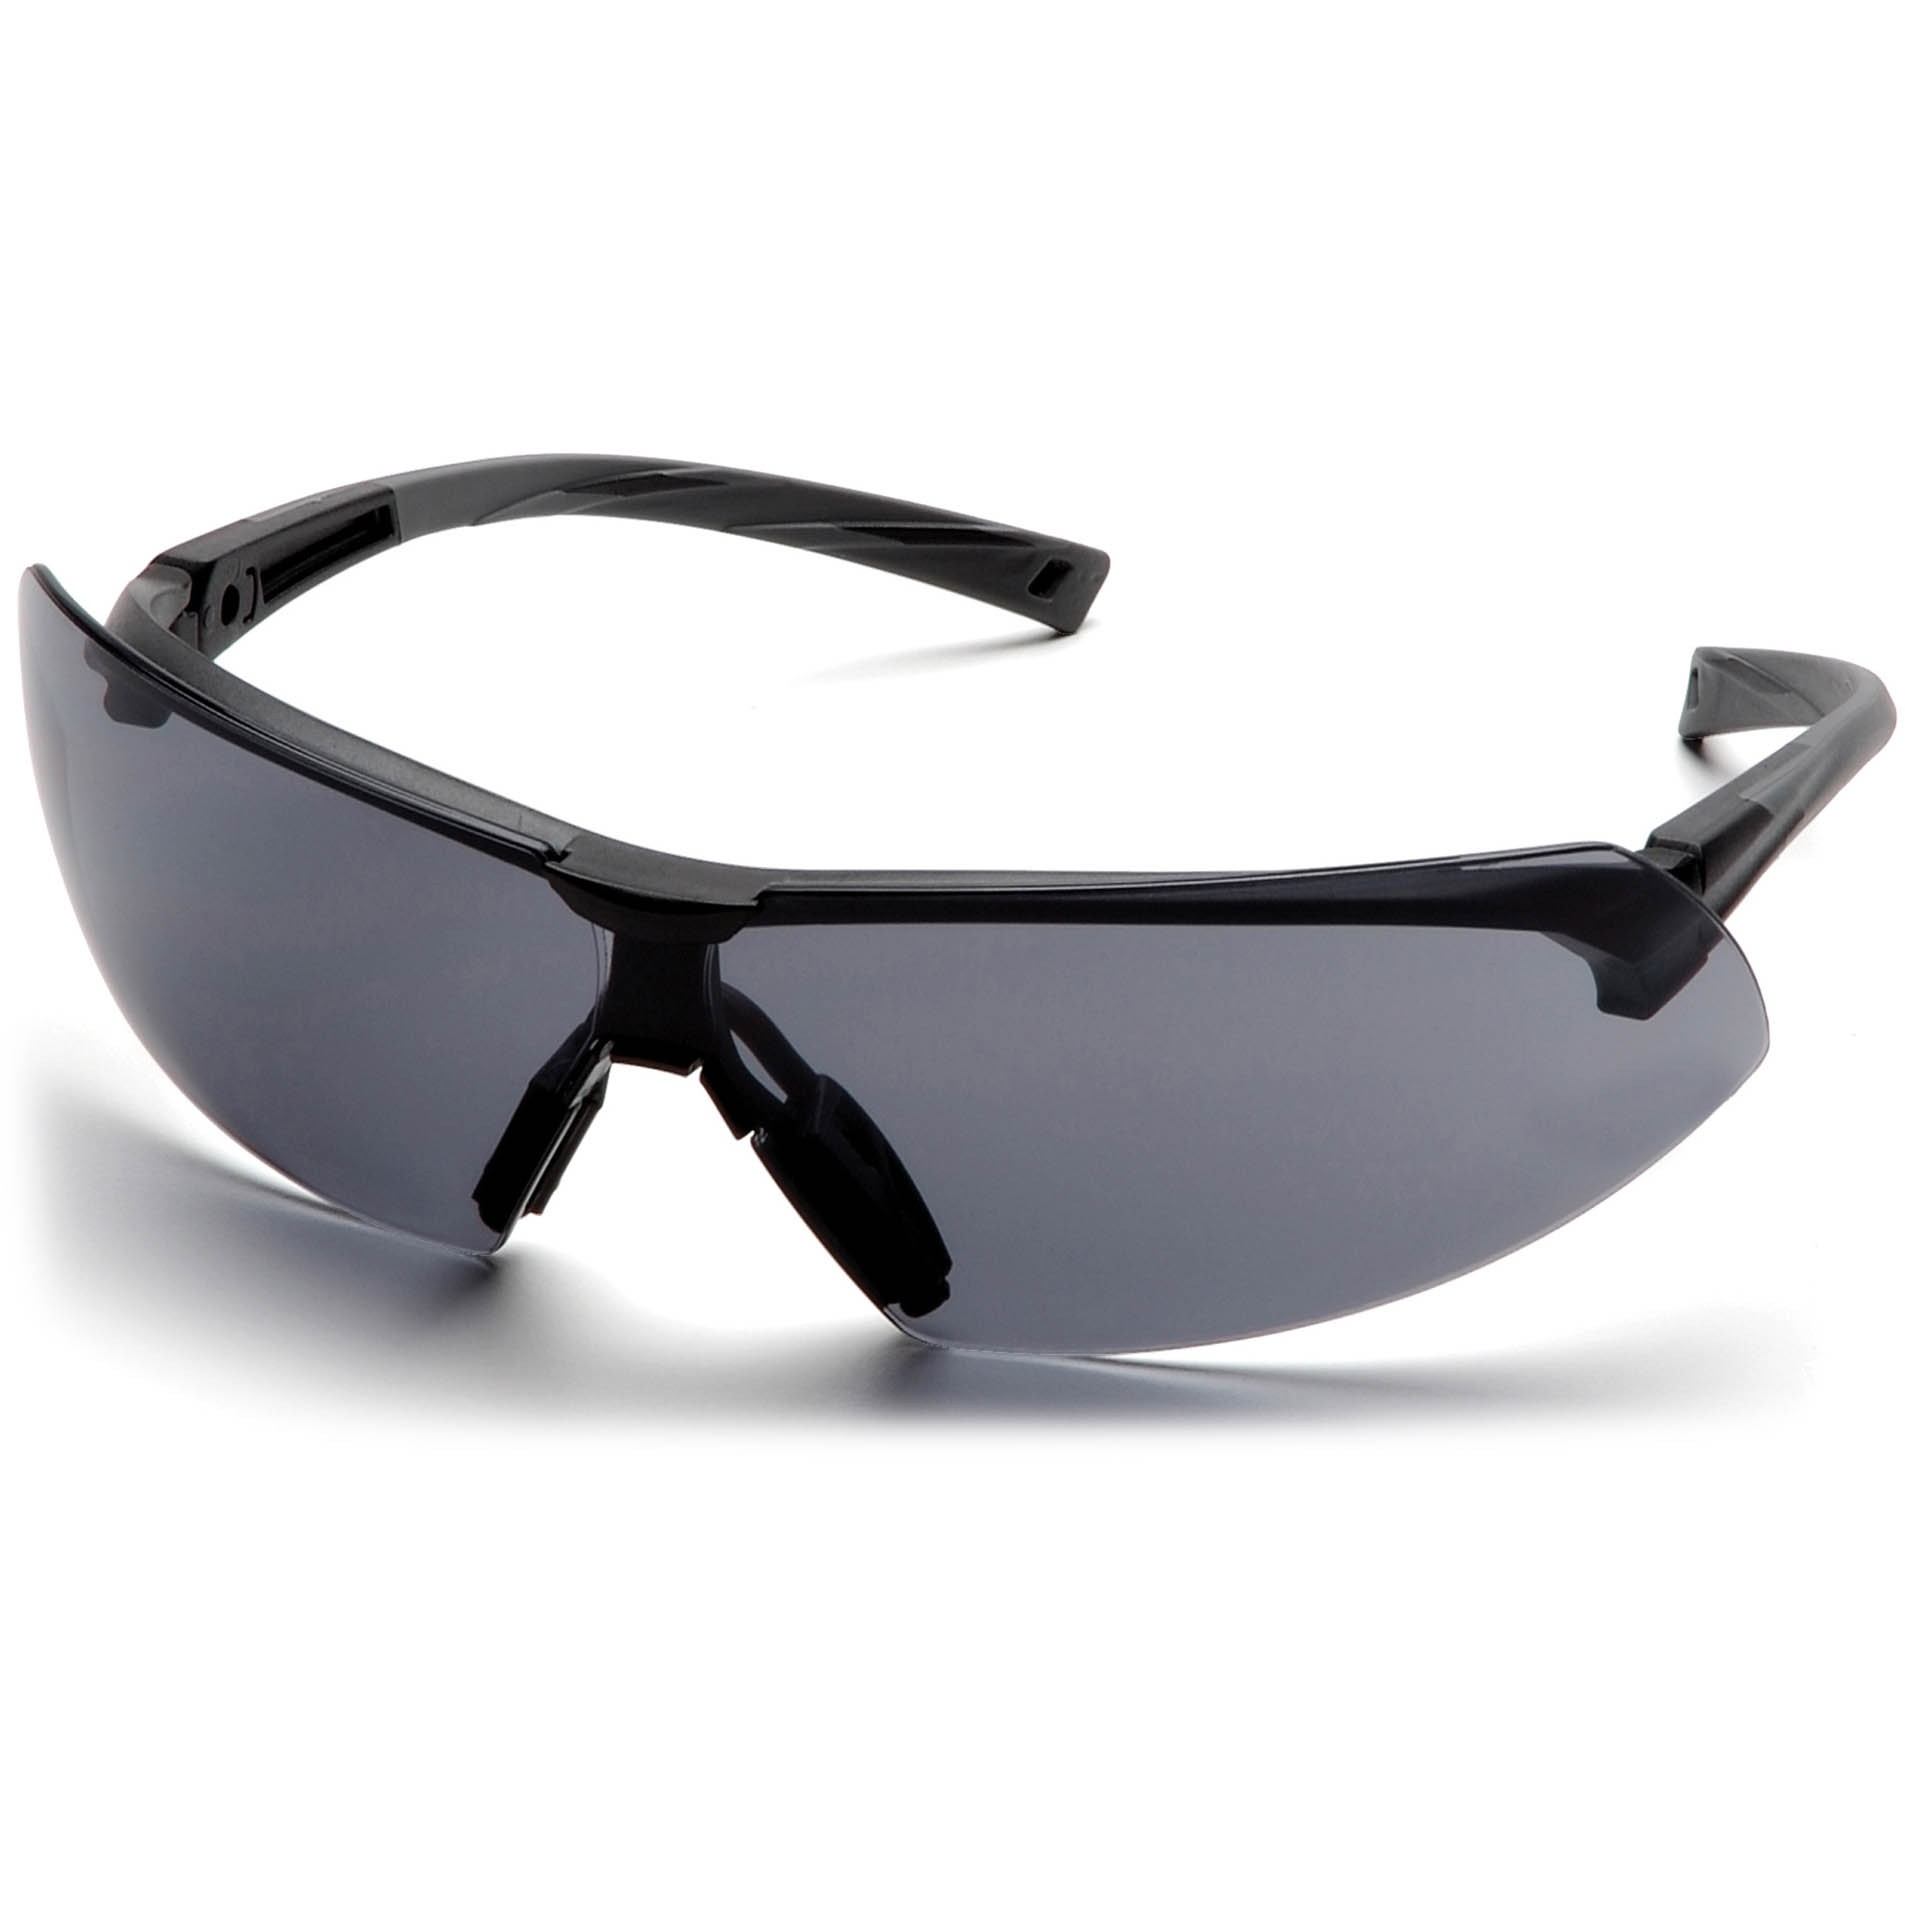 8ea764d29caa3 Pyramex Onix Safety Glasses - Black Frame - Gray Lens